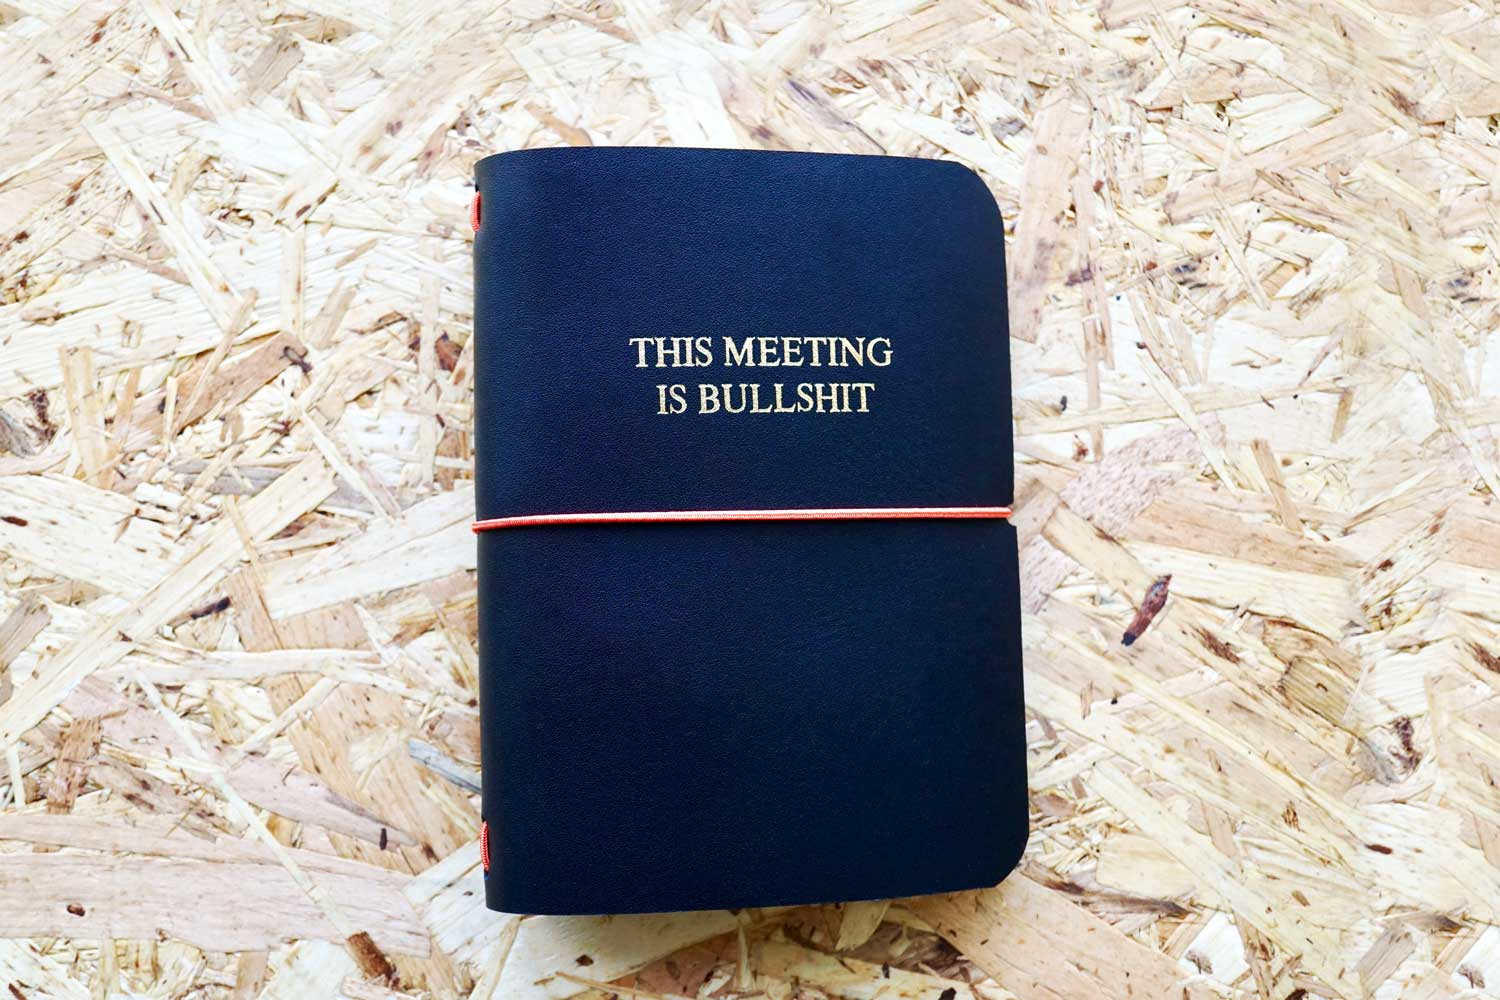 Never-ending journal - This meeting is Bullsh*t, leather travel journal, A6 pocket size with embossed title in gold foil, 3 inner A6 notebooks